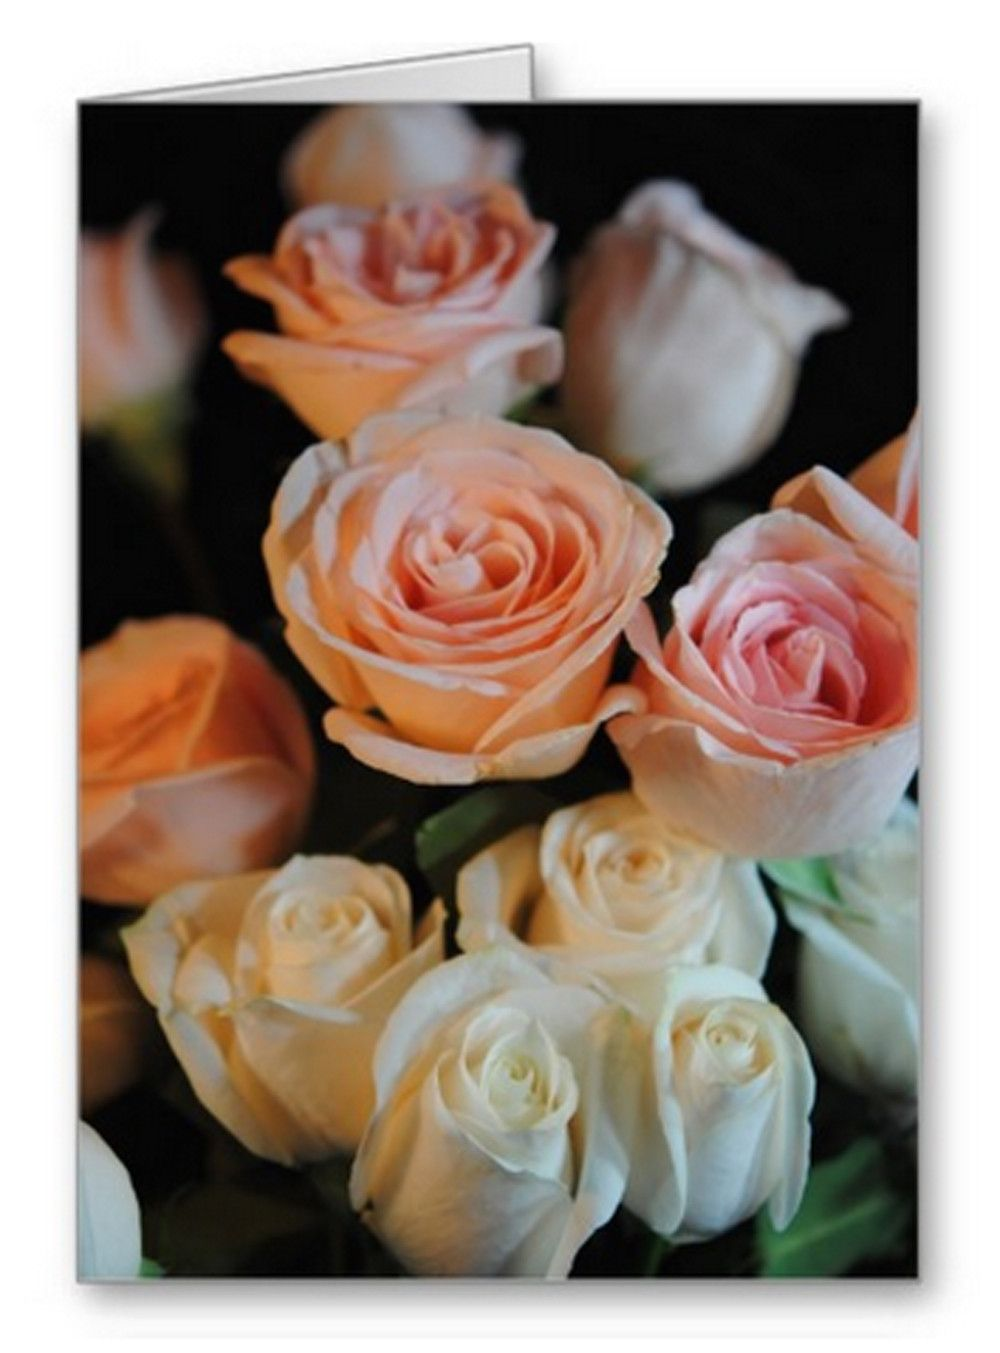 Pink and White Roses Blank Greeting Card | Independent Art Gifts By Blooming Vine Design